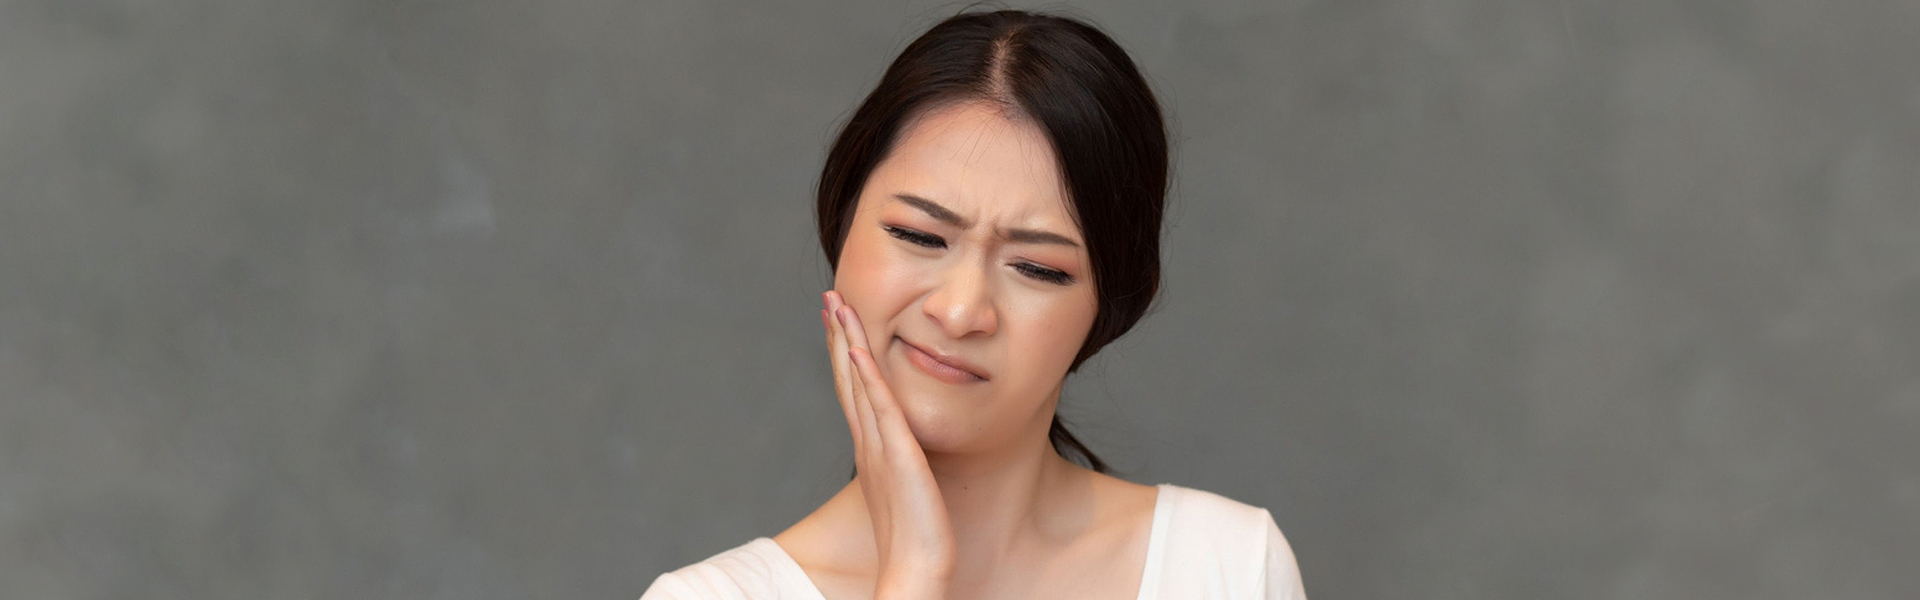 Can A Person With Diabetes Have Wisdom Tooth Extraction?